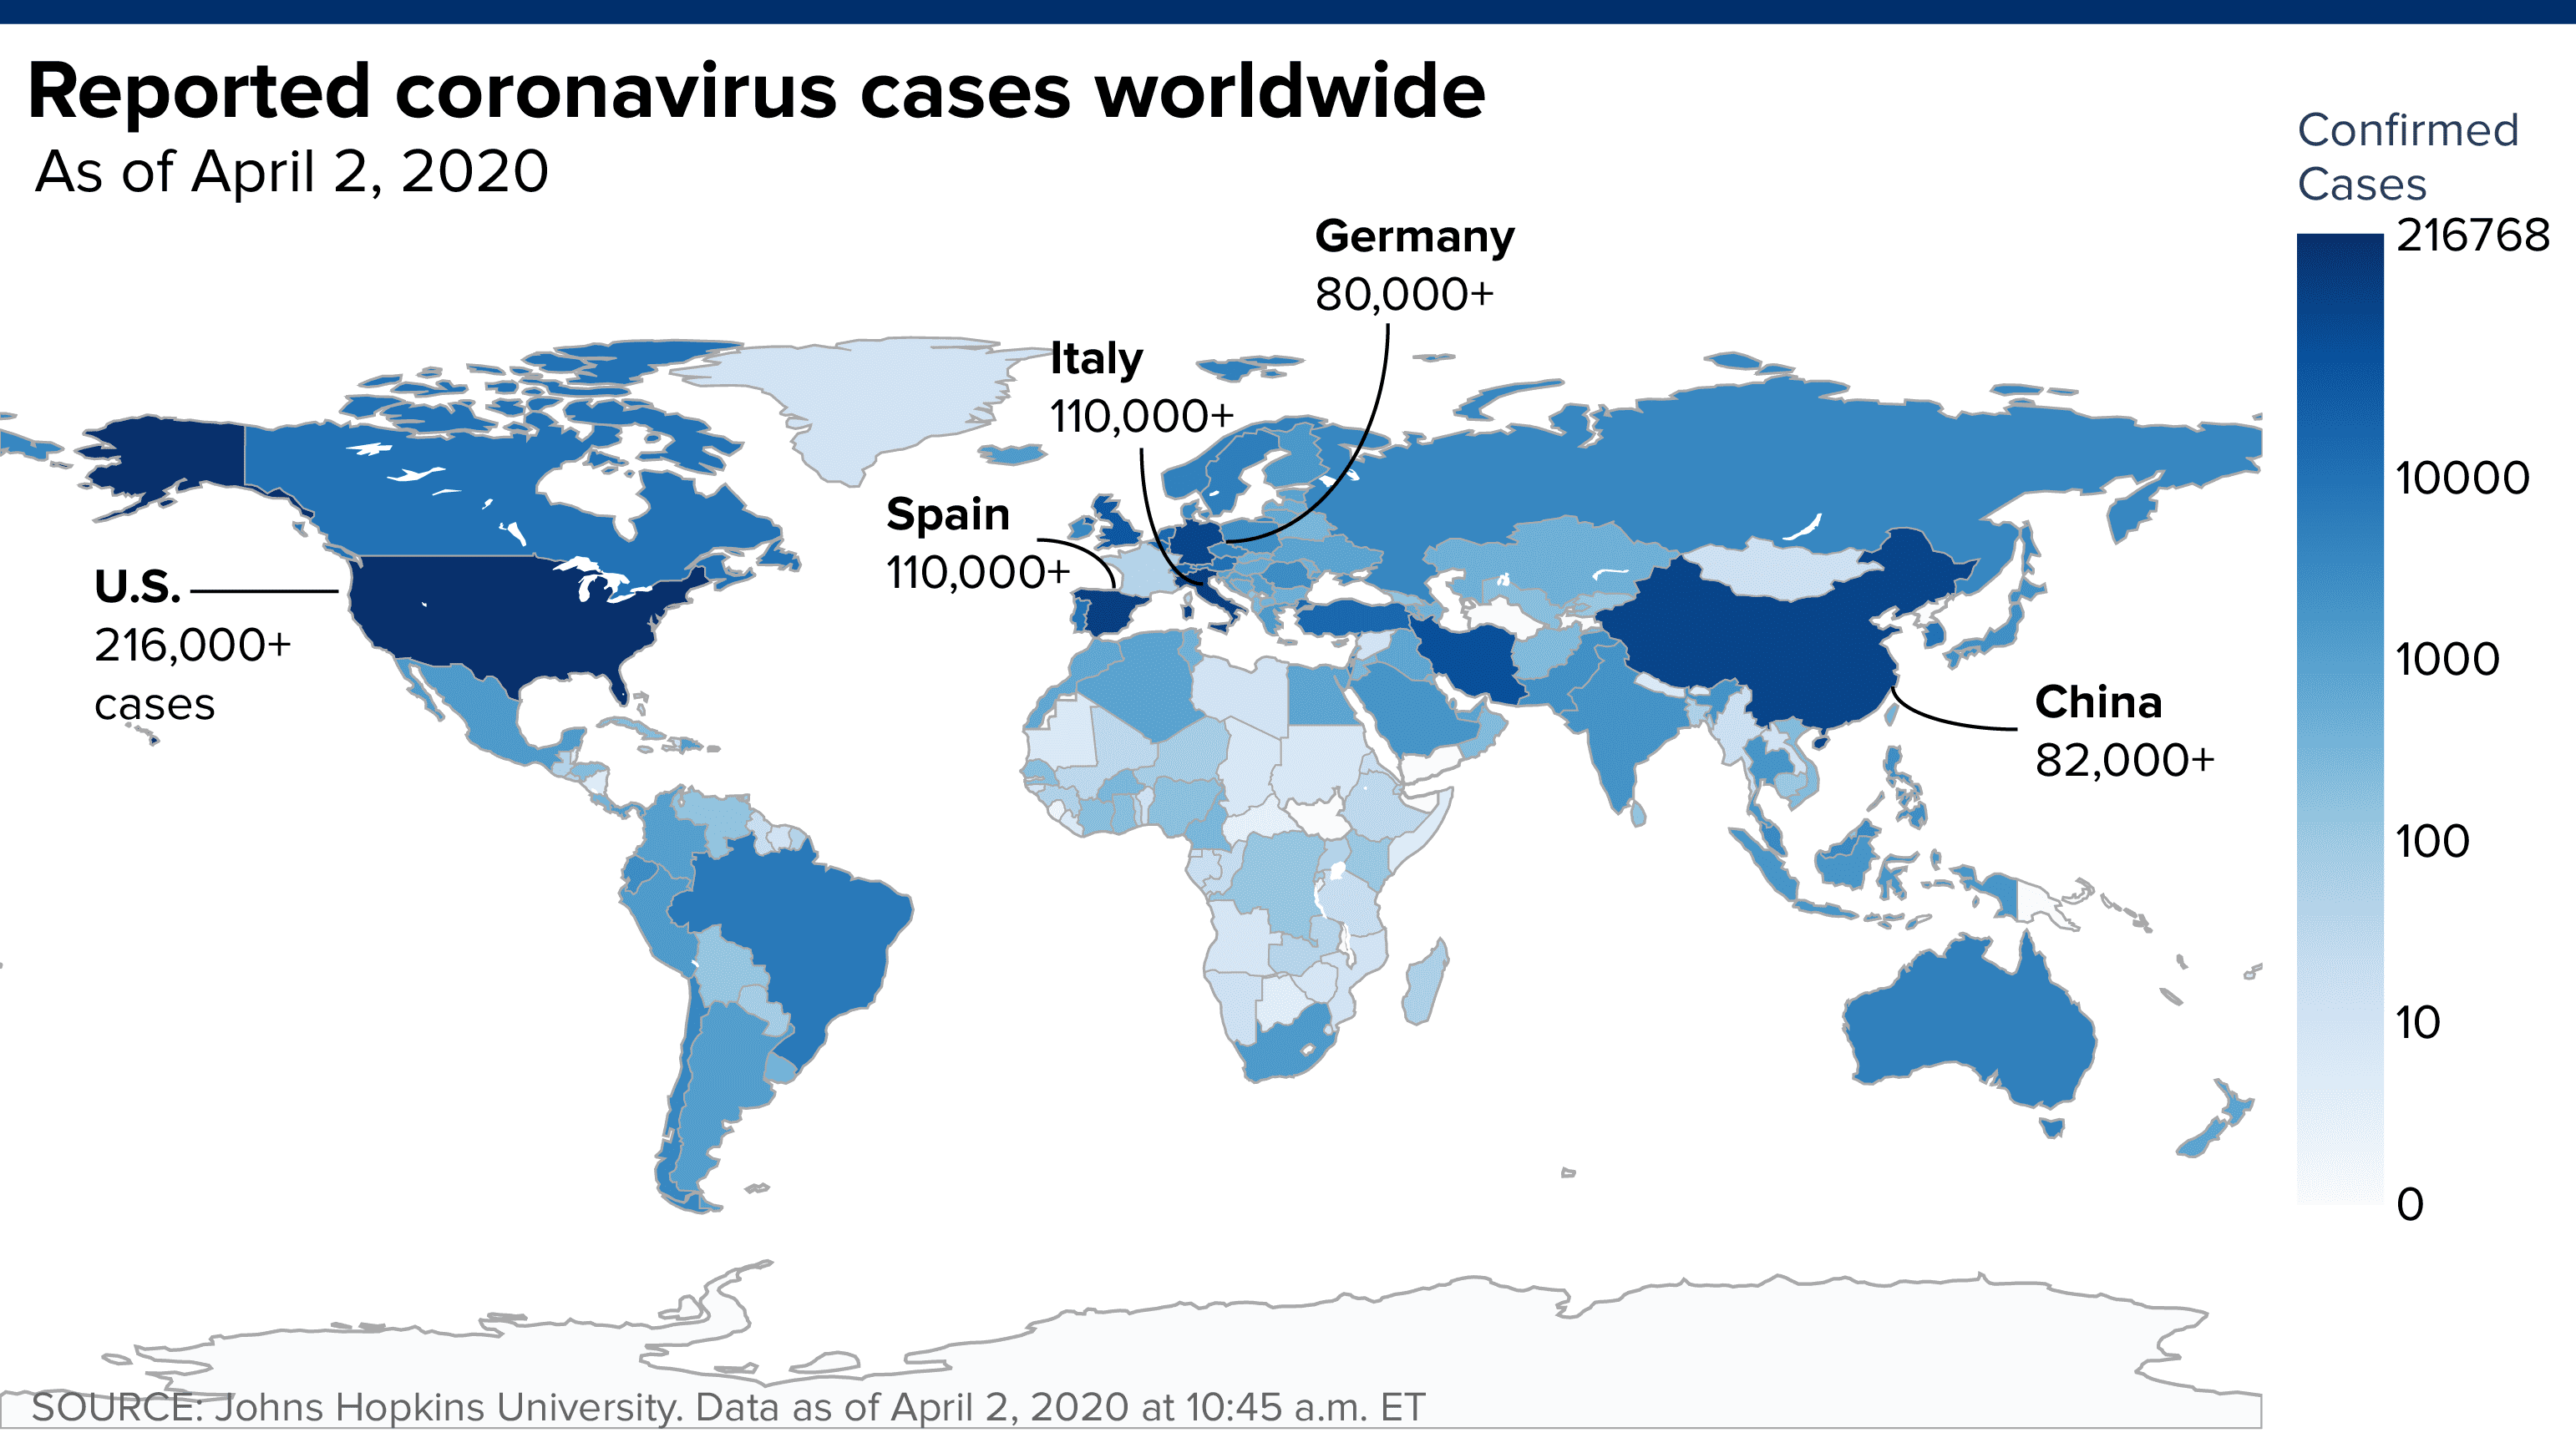 Worldwide coronavirus cases reach 1 million, doubling in a week